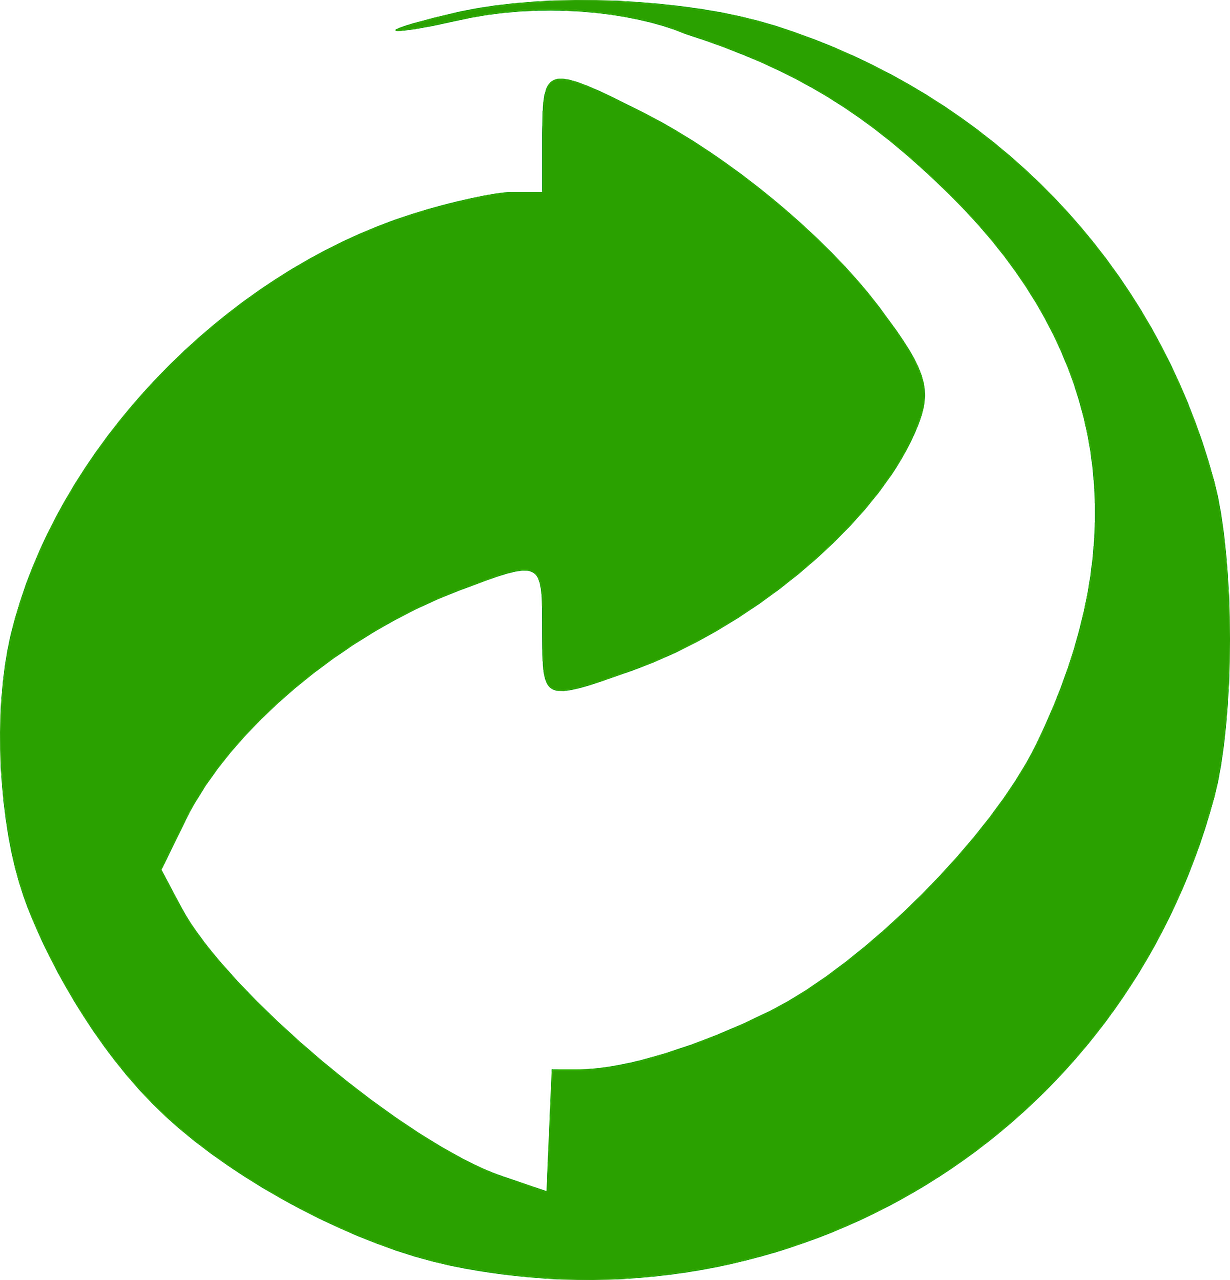 green dot symbol.png